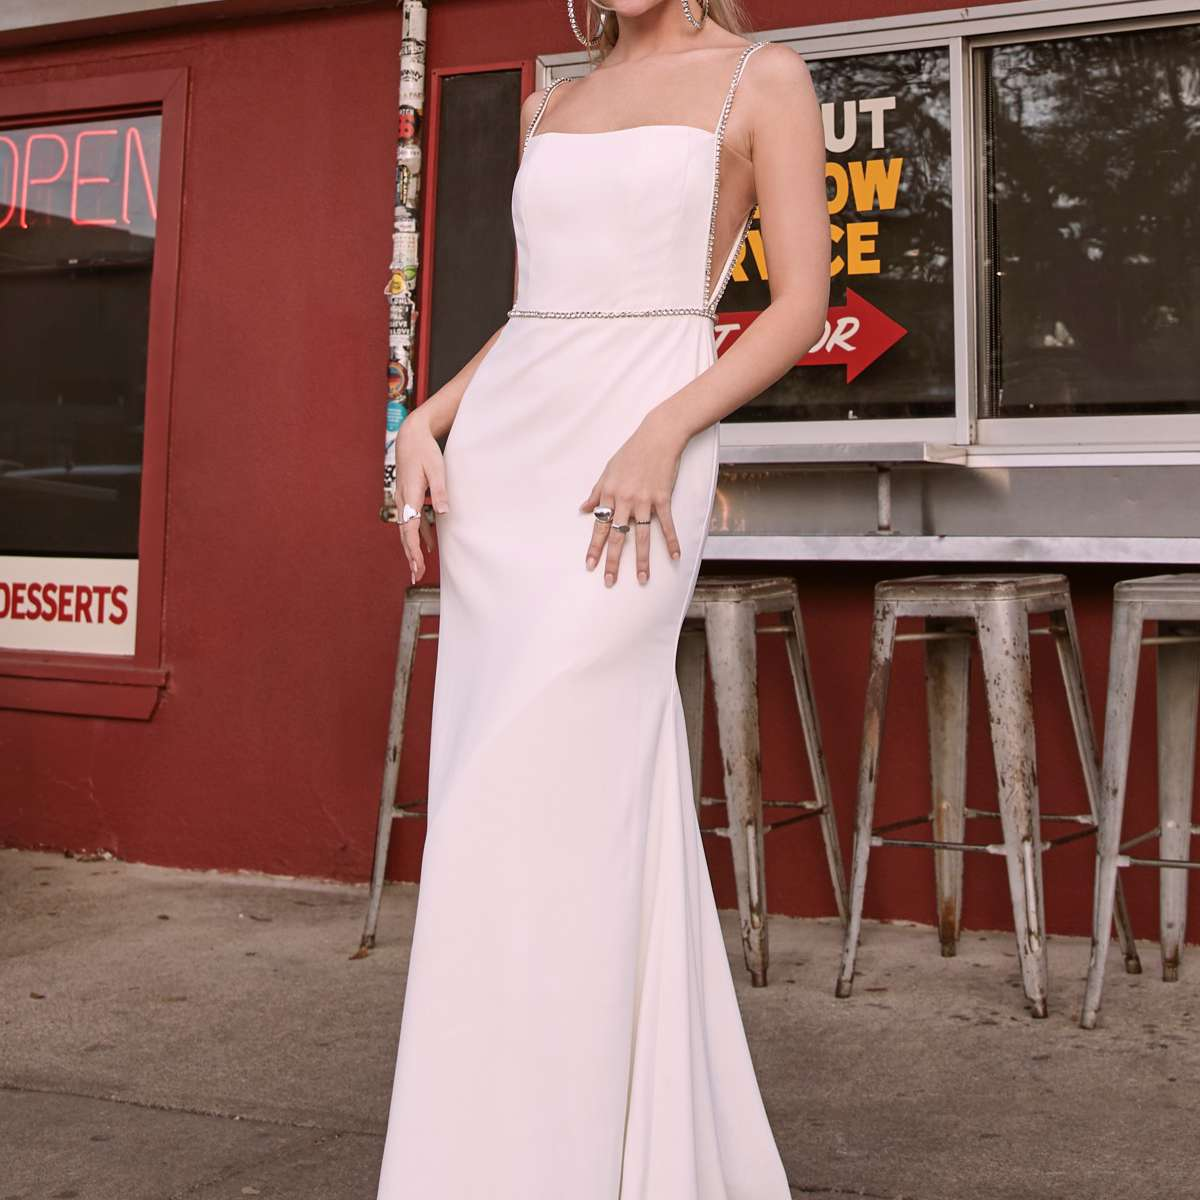 Model in fit-and-flare crepe gown with a square neckline and crystal straps and waistband